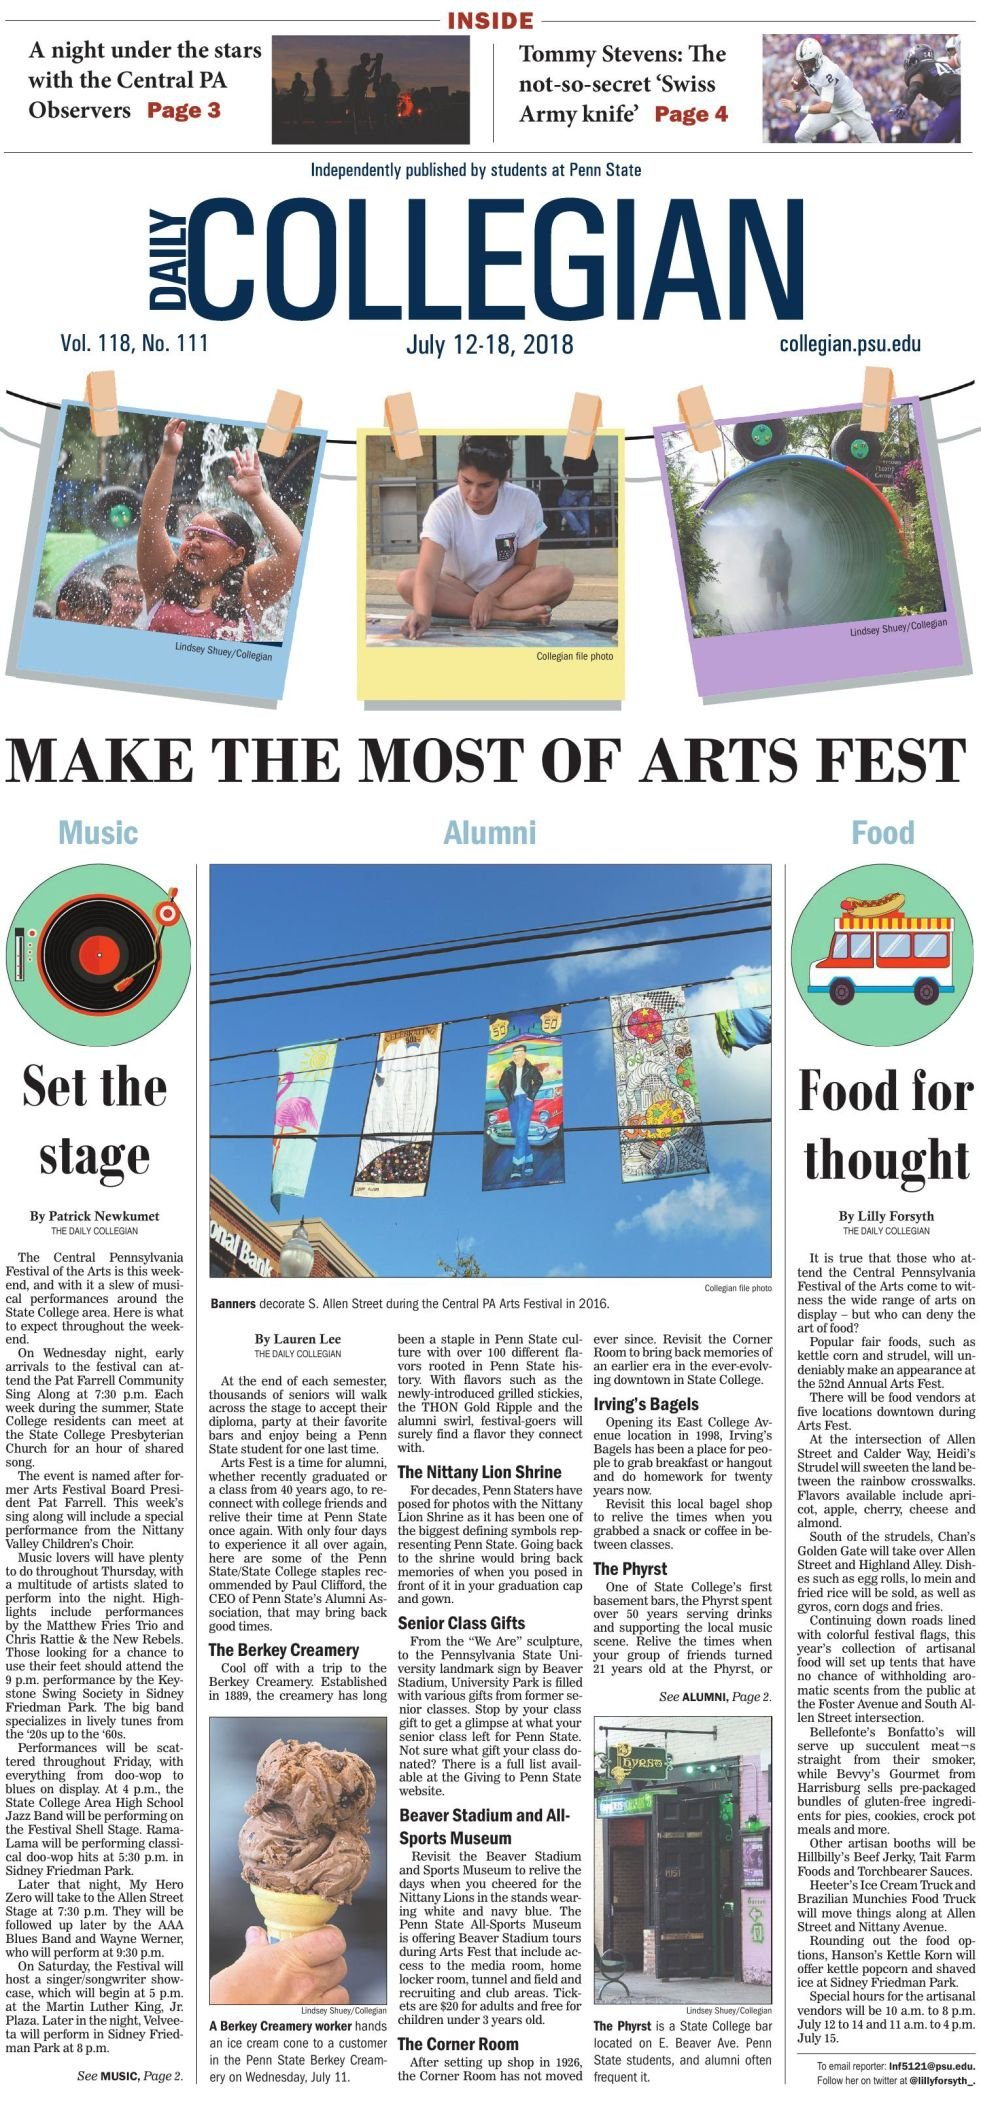 The Daily Collegian for July 12, 2018